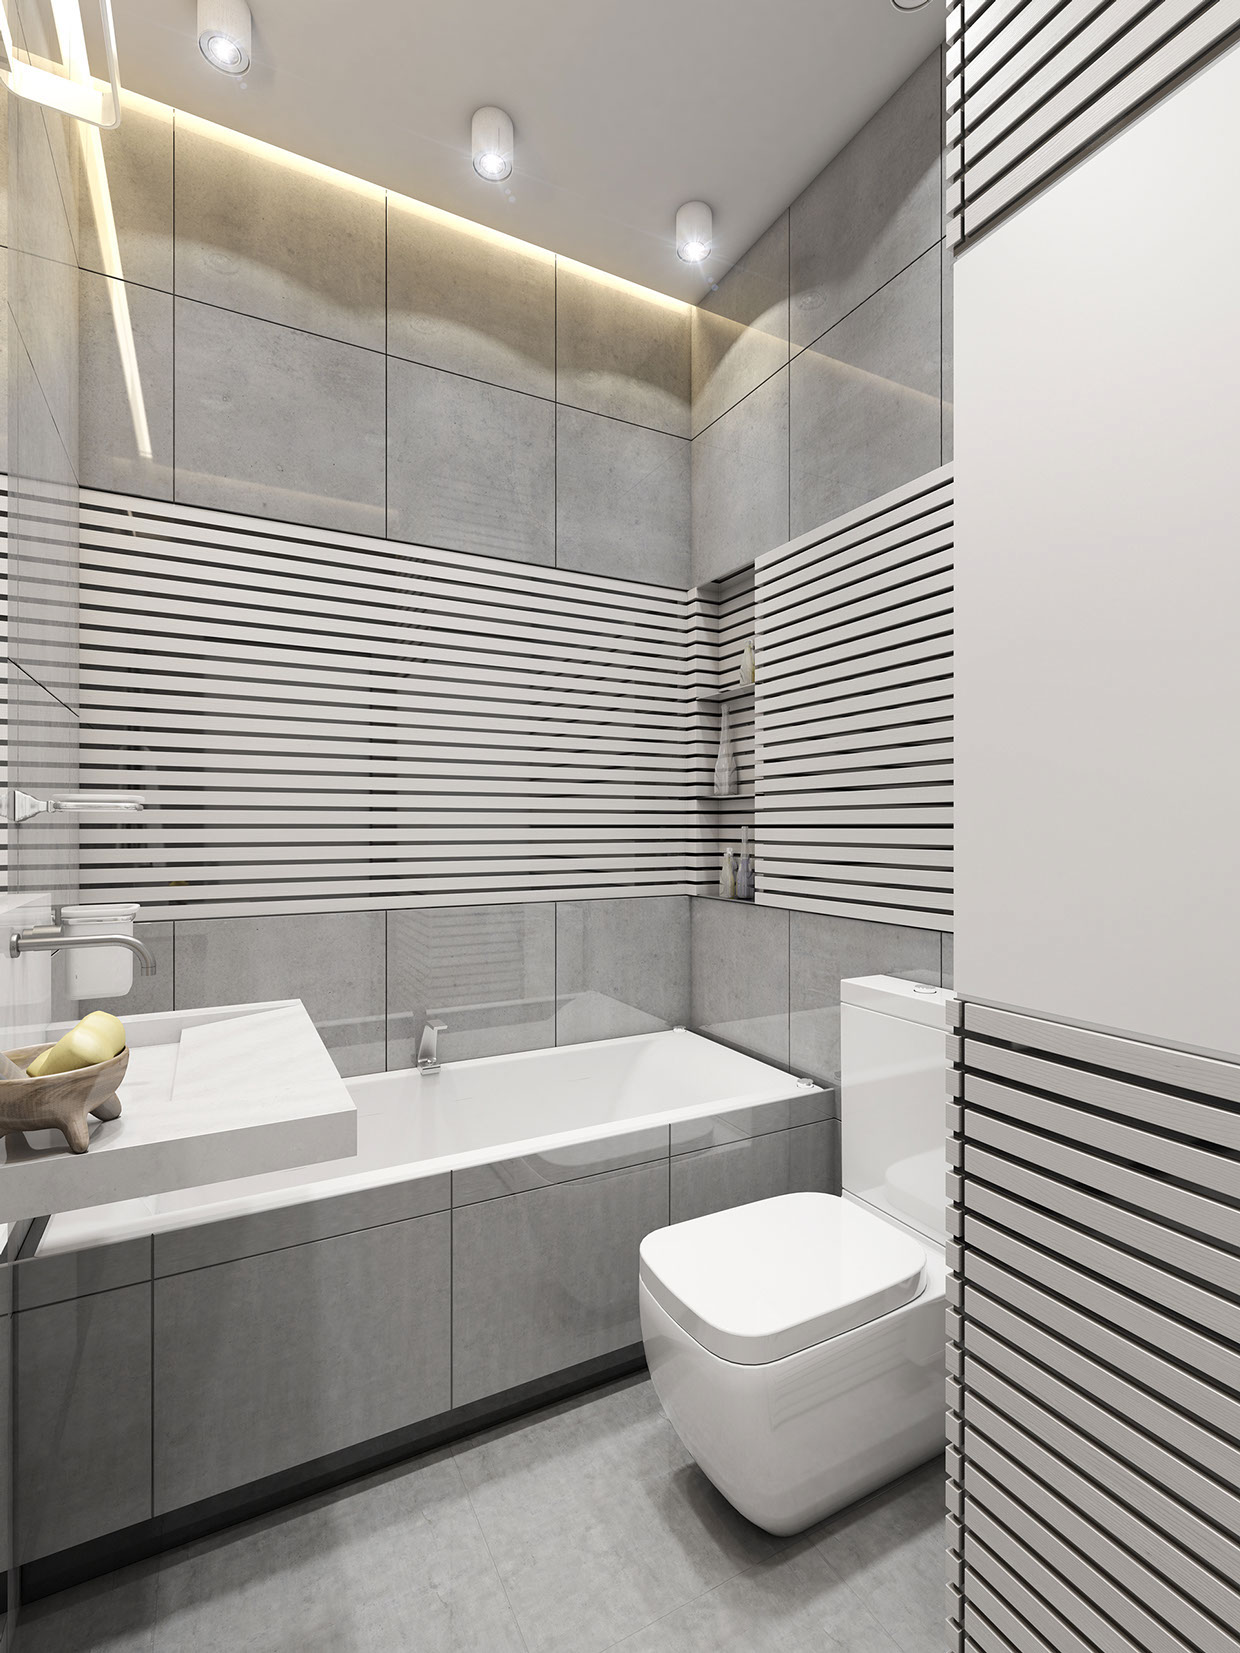 Small Modern Bathroom - 3 super small homes with floor area under 400 square feet 40 square meter